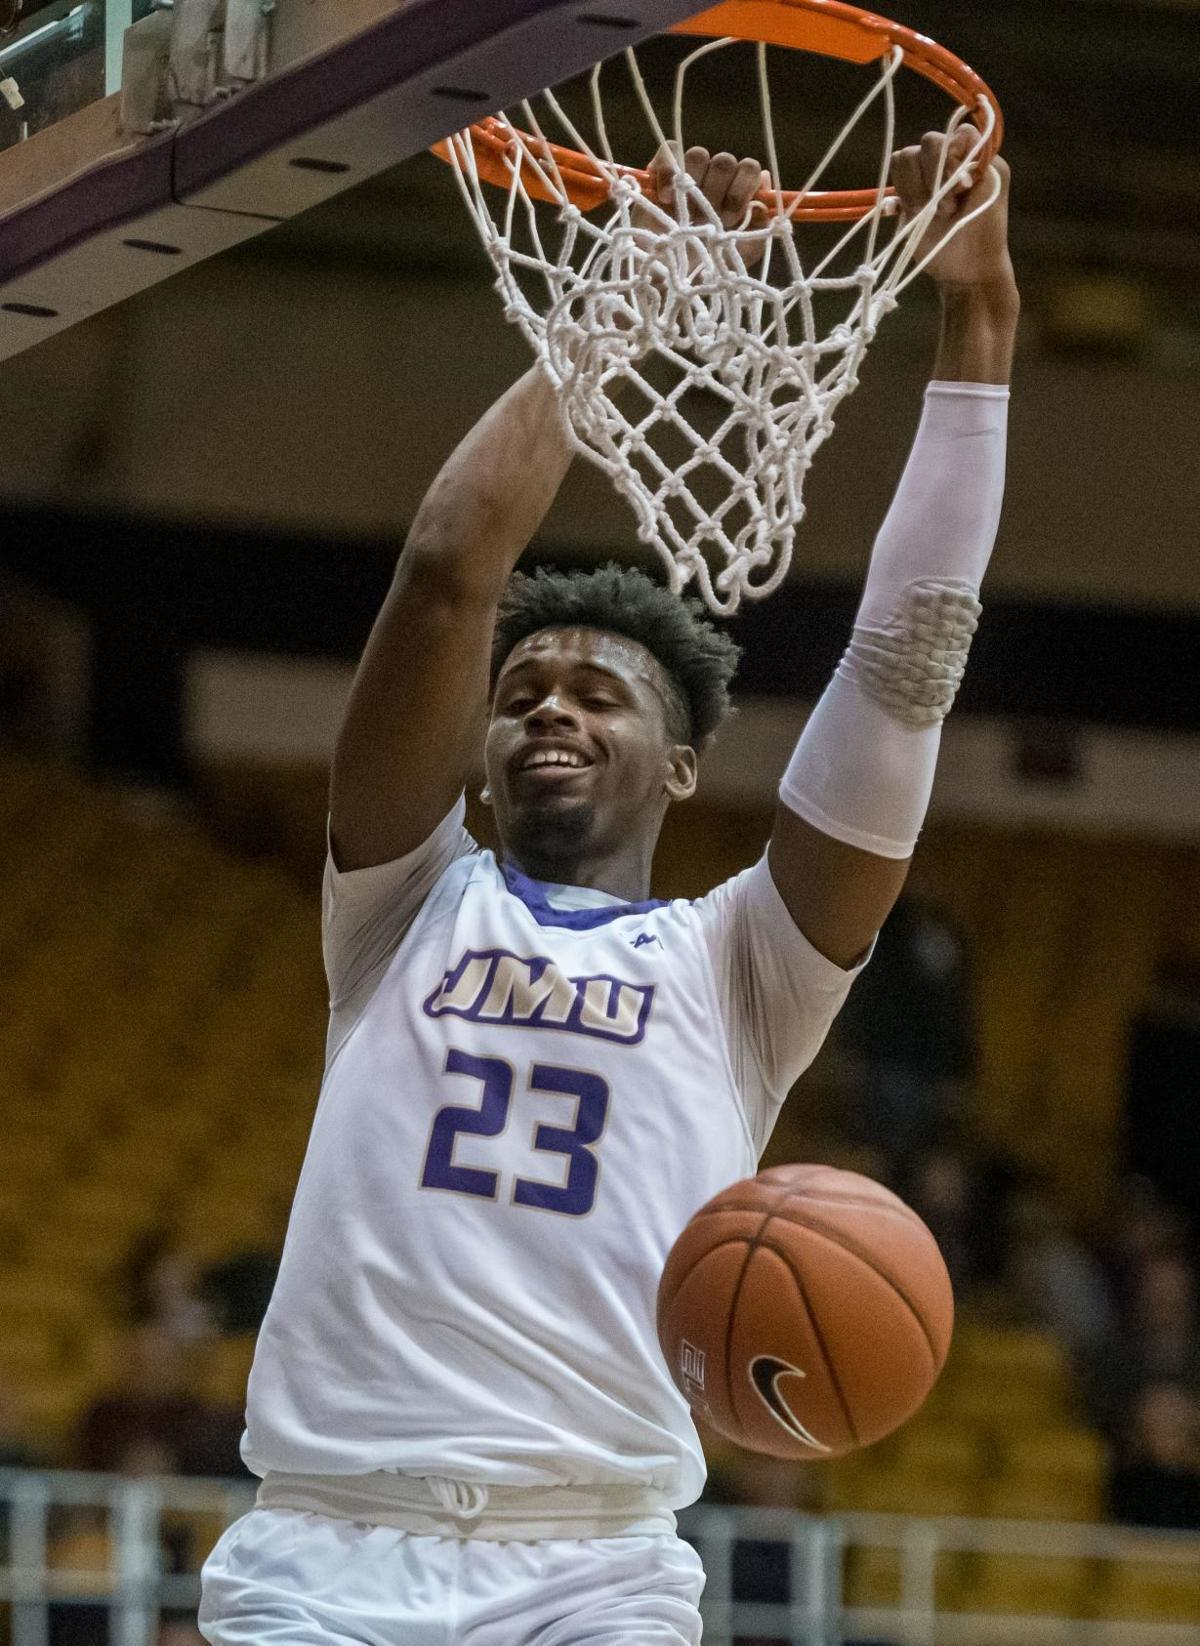 JMU Basketball